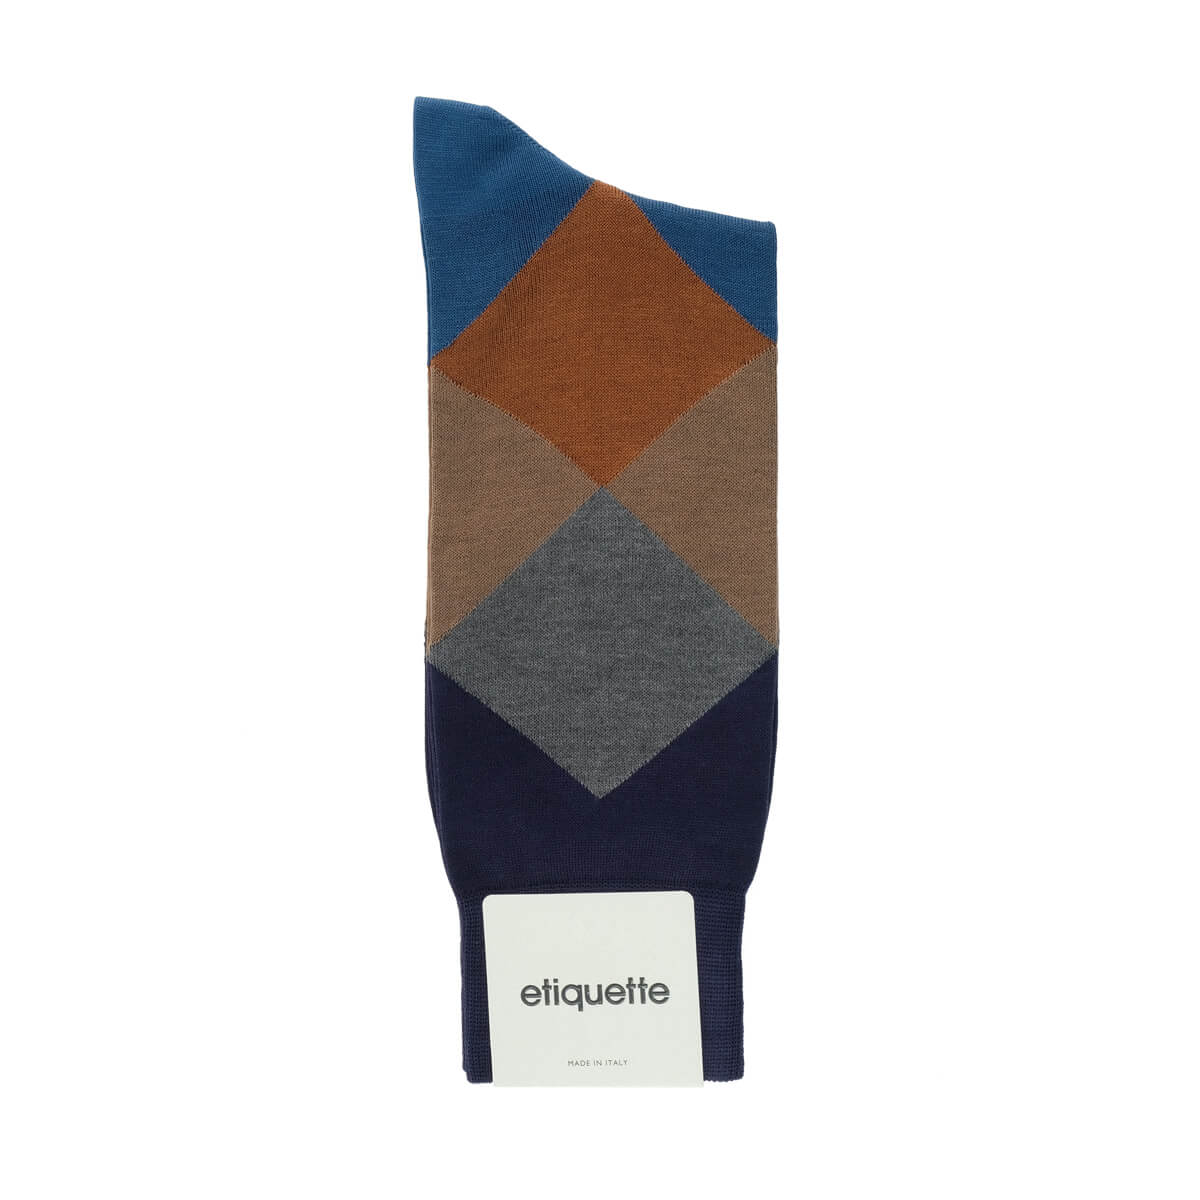 Harlequin - Dark Blue - Image 4